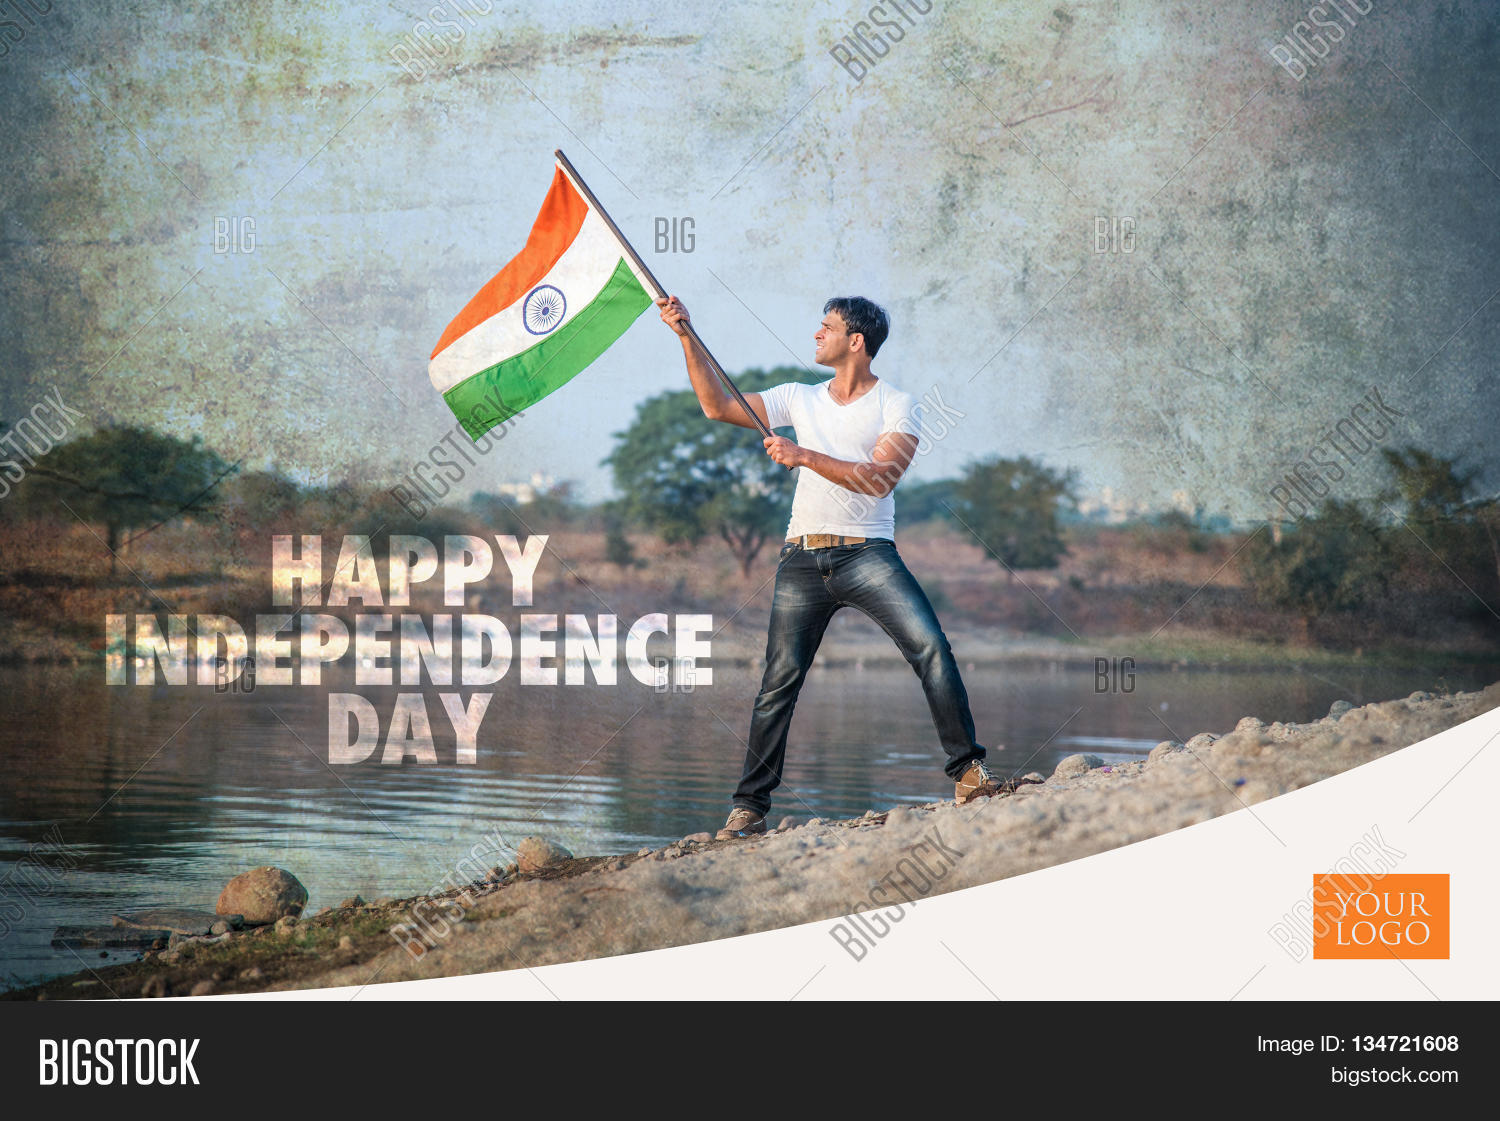 Independence Day India Image Photo Free Trial Bigstock